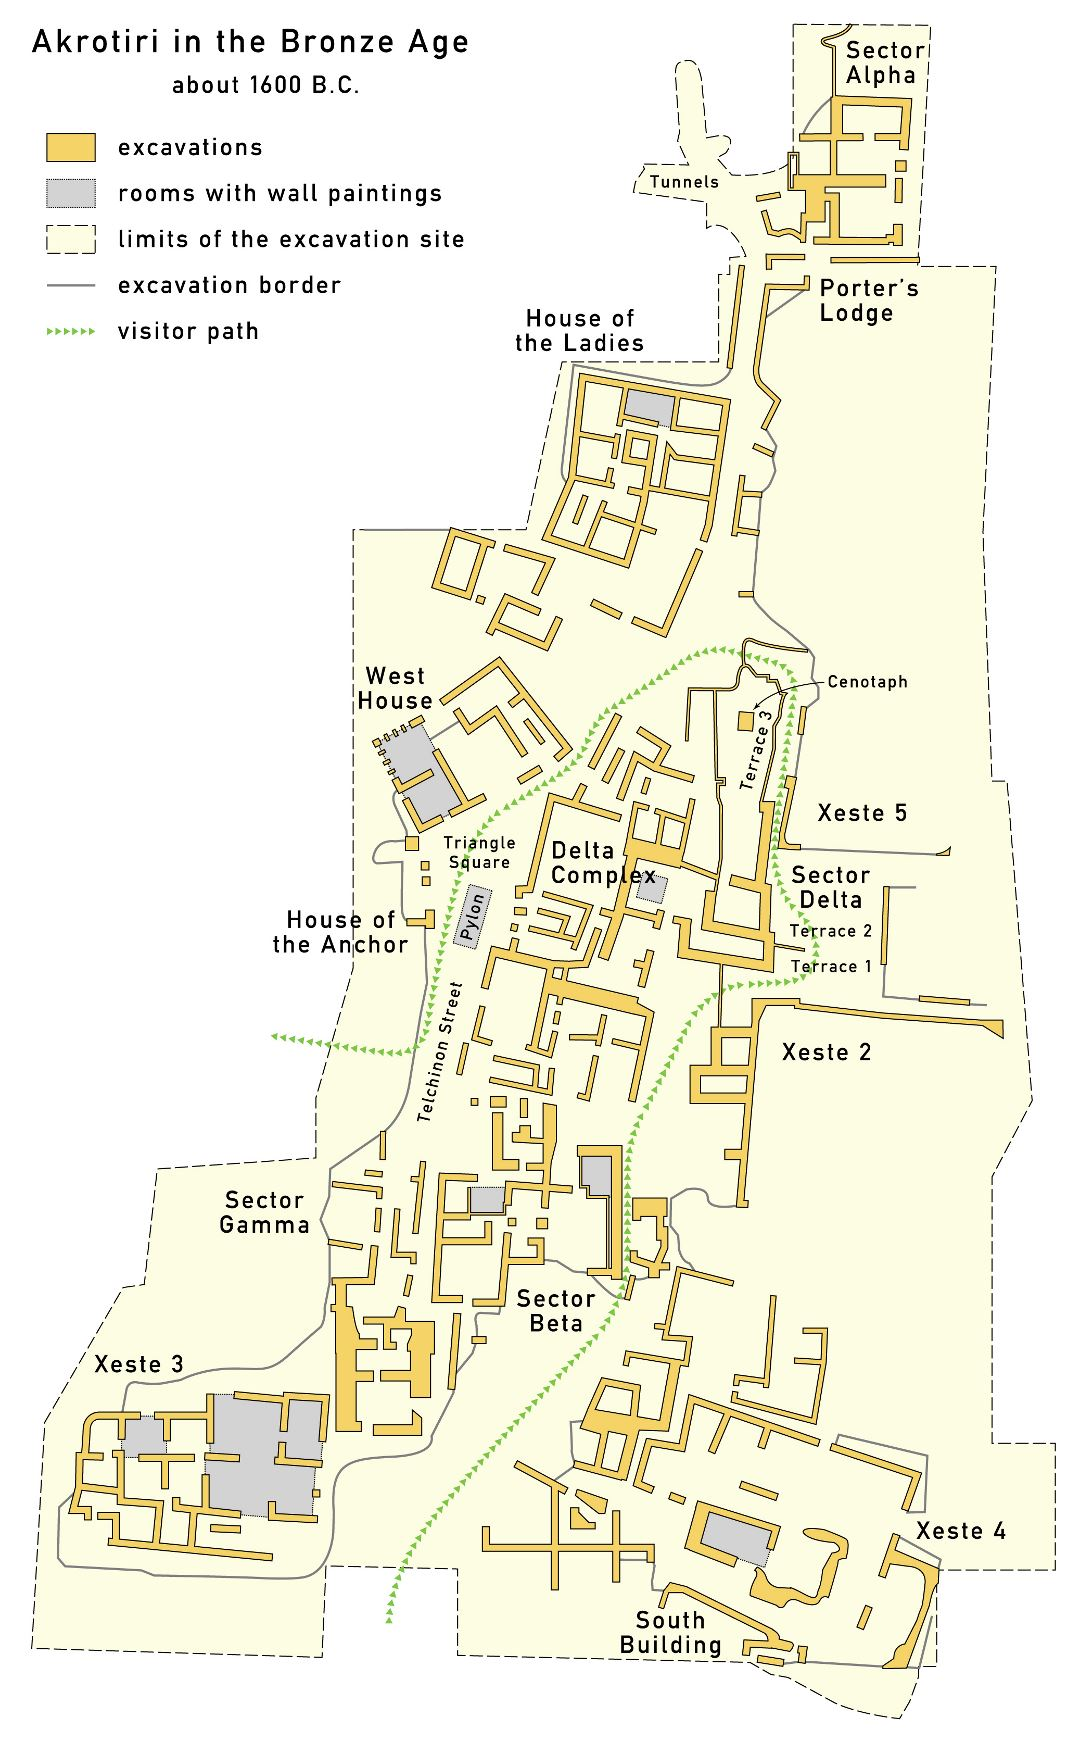 Large map of Akrotiri 1600 BC